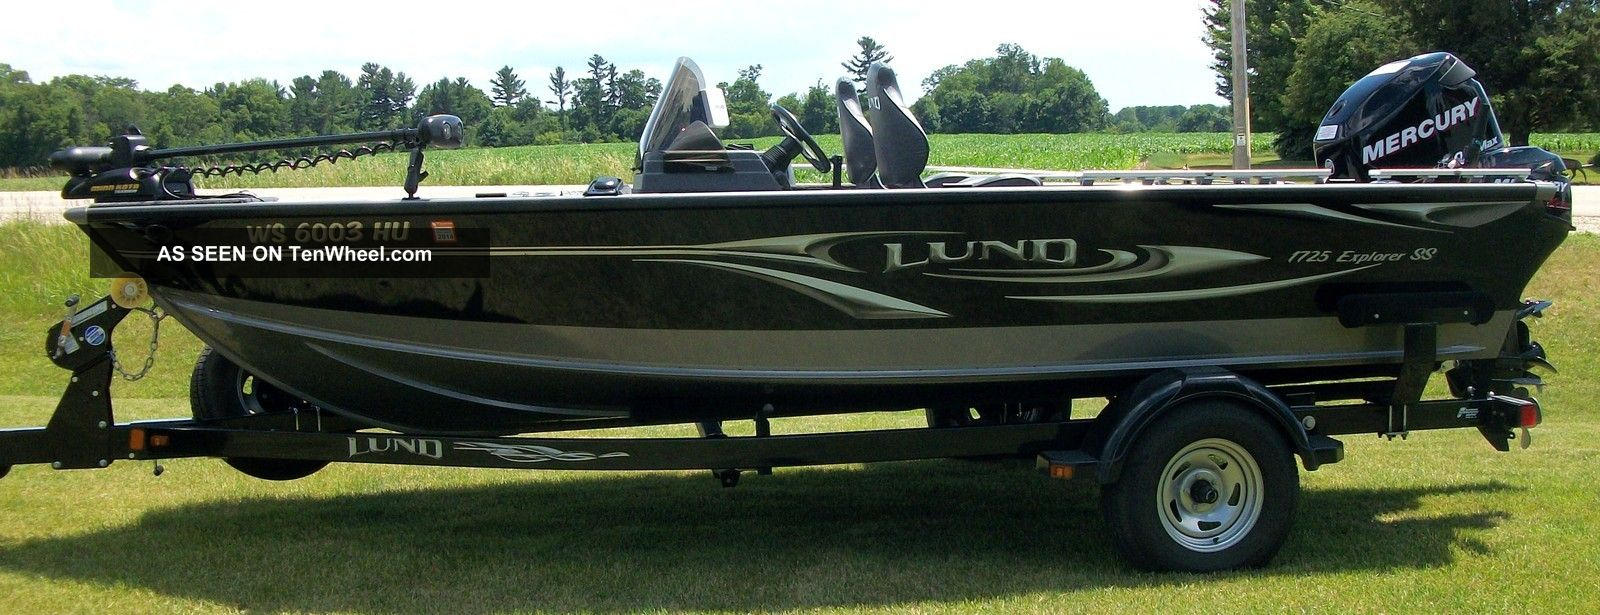 2010 Lund Other Freshwater Fishing photo